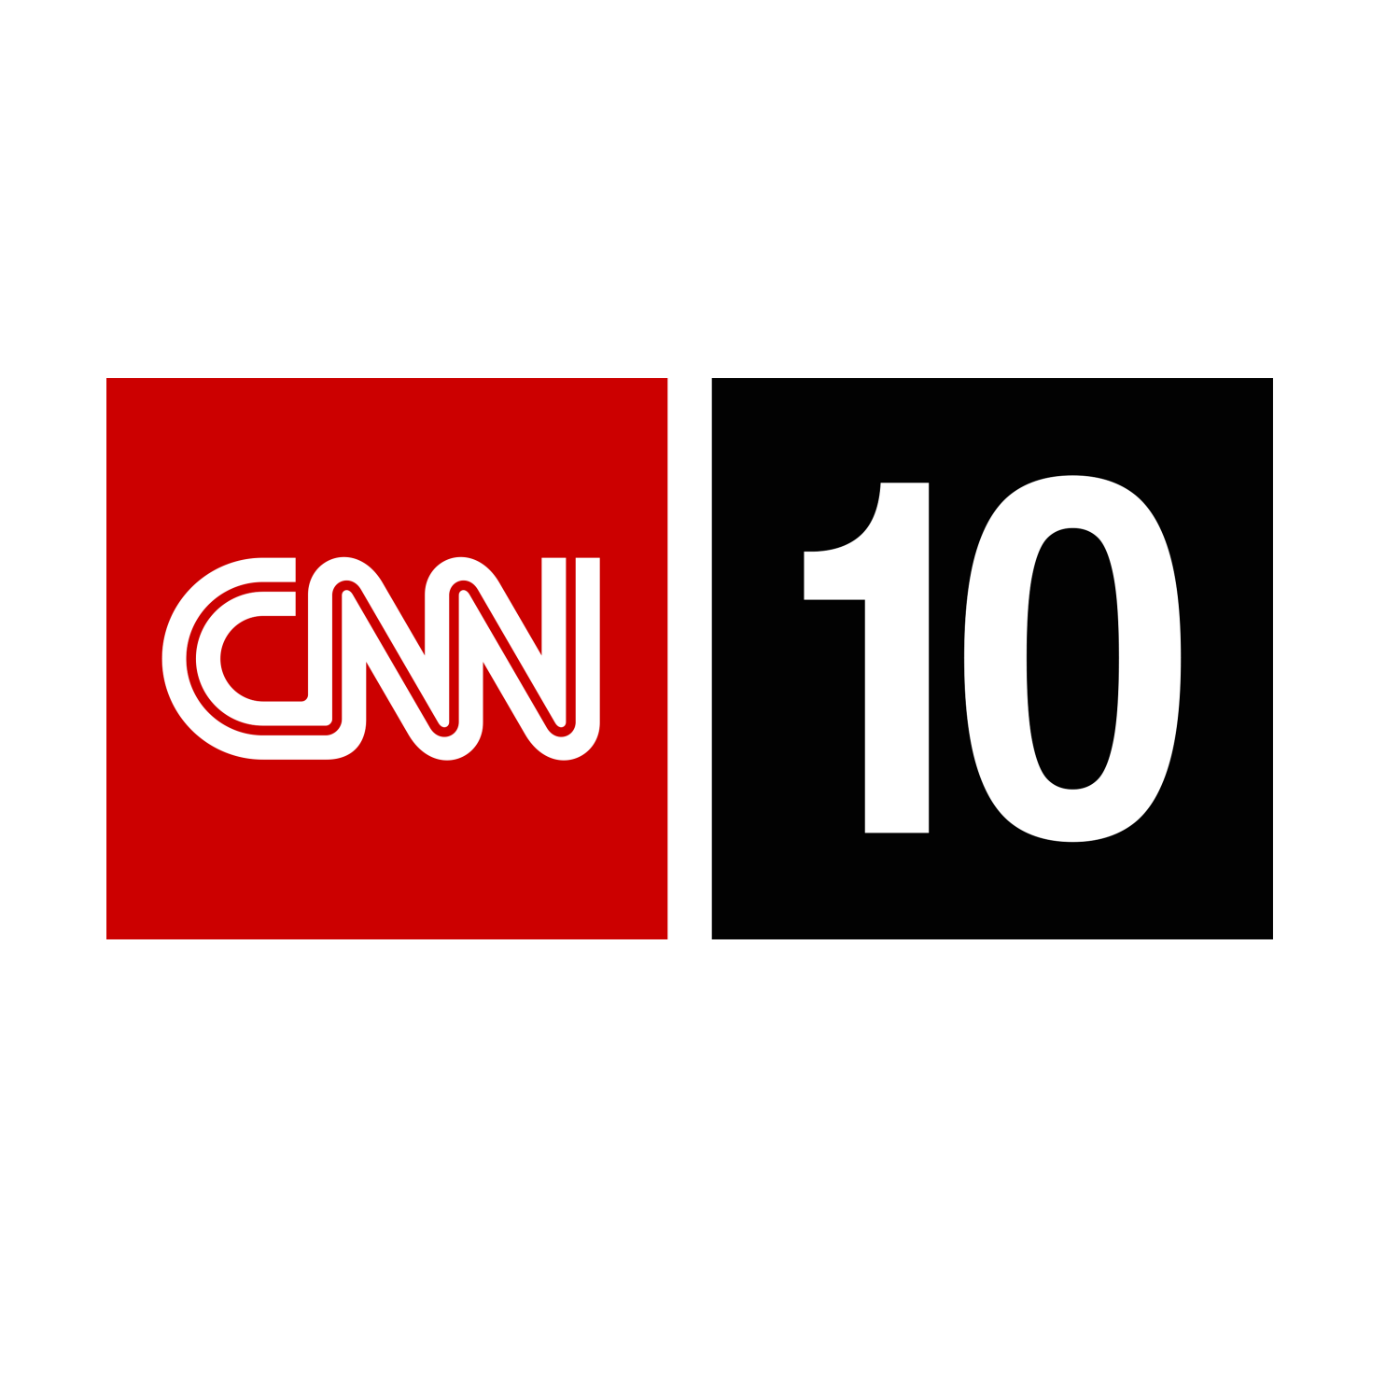 CNN Student News - April 30, 2013